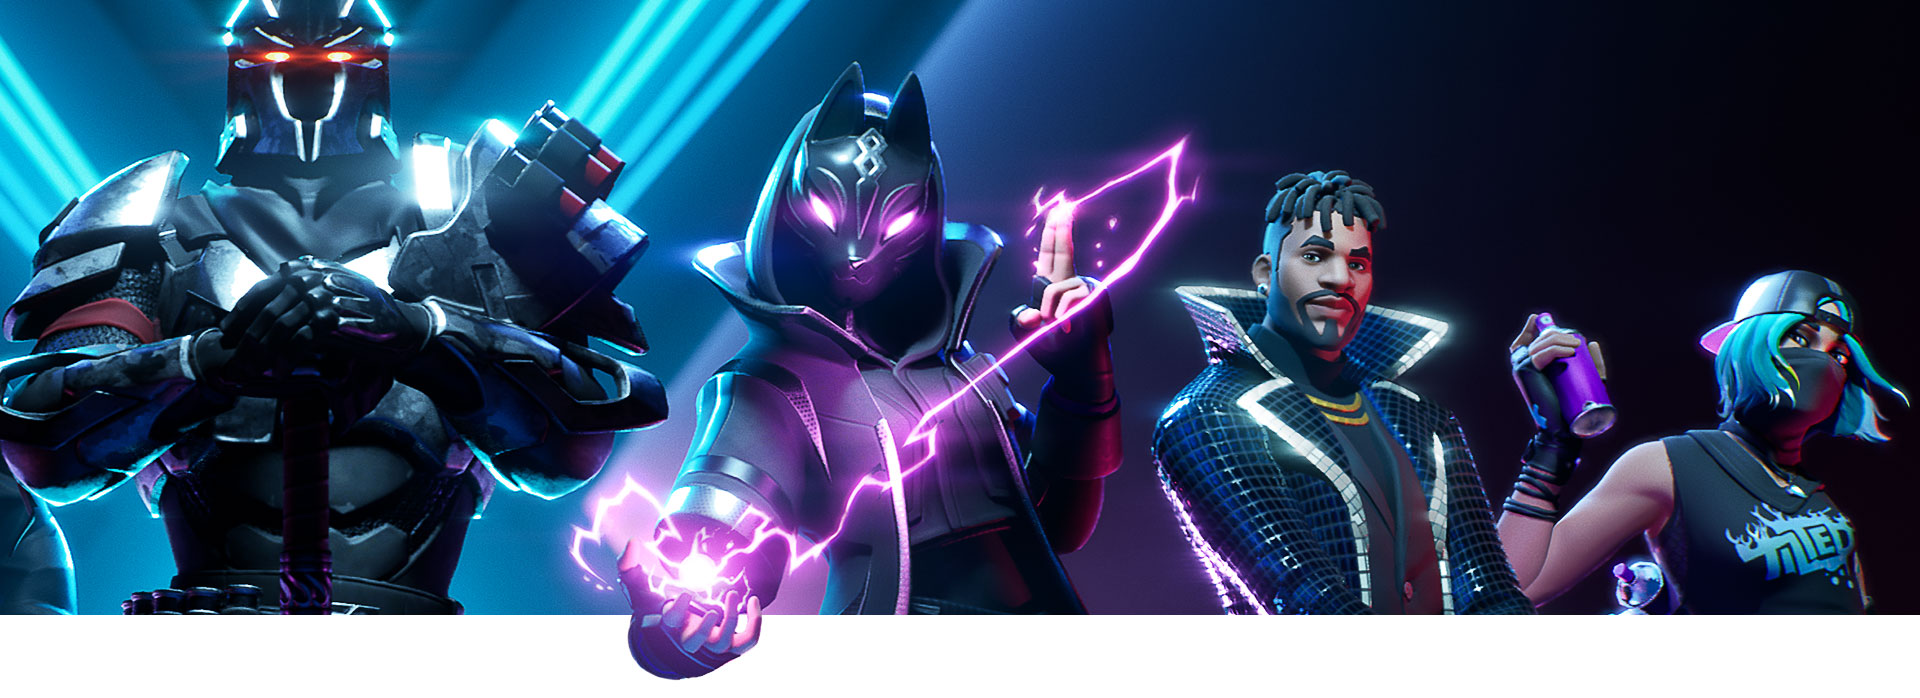 Vier Fortnite-personages die poseren